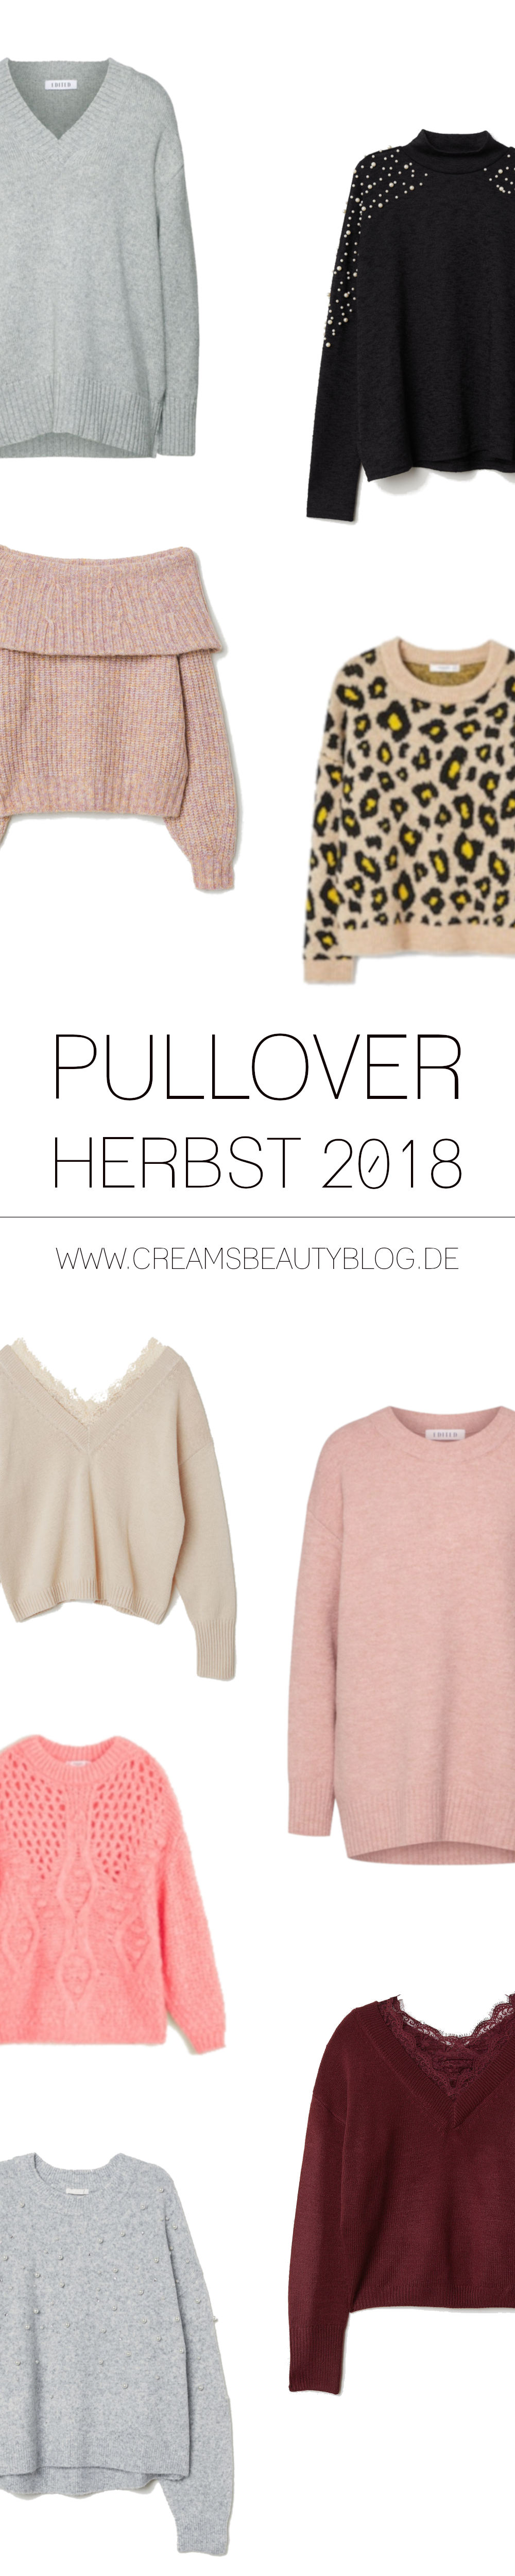 Pullover Herbst 2018